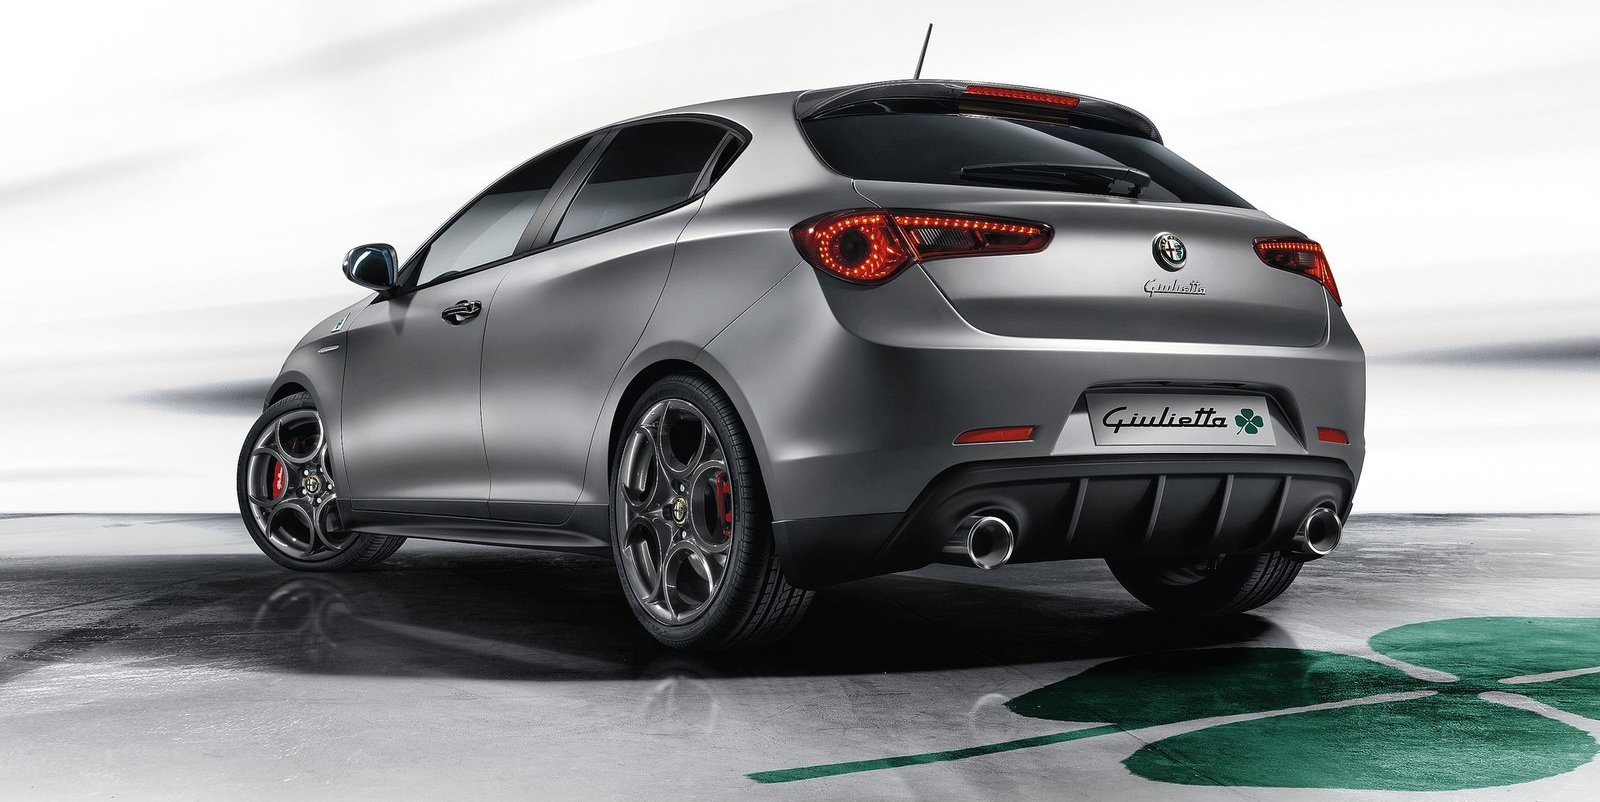 2015 alfa romeo giulietta qv pricing and specifications update photos 1 of 3. Black Bedroom Furniture Sets. Home Design Ideas